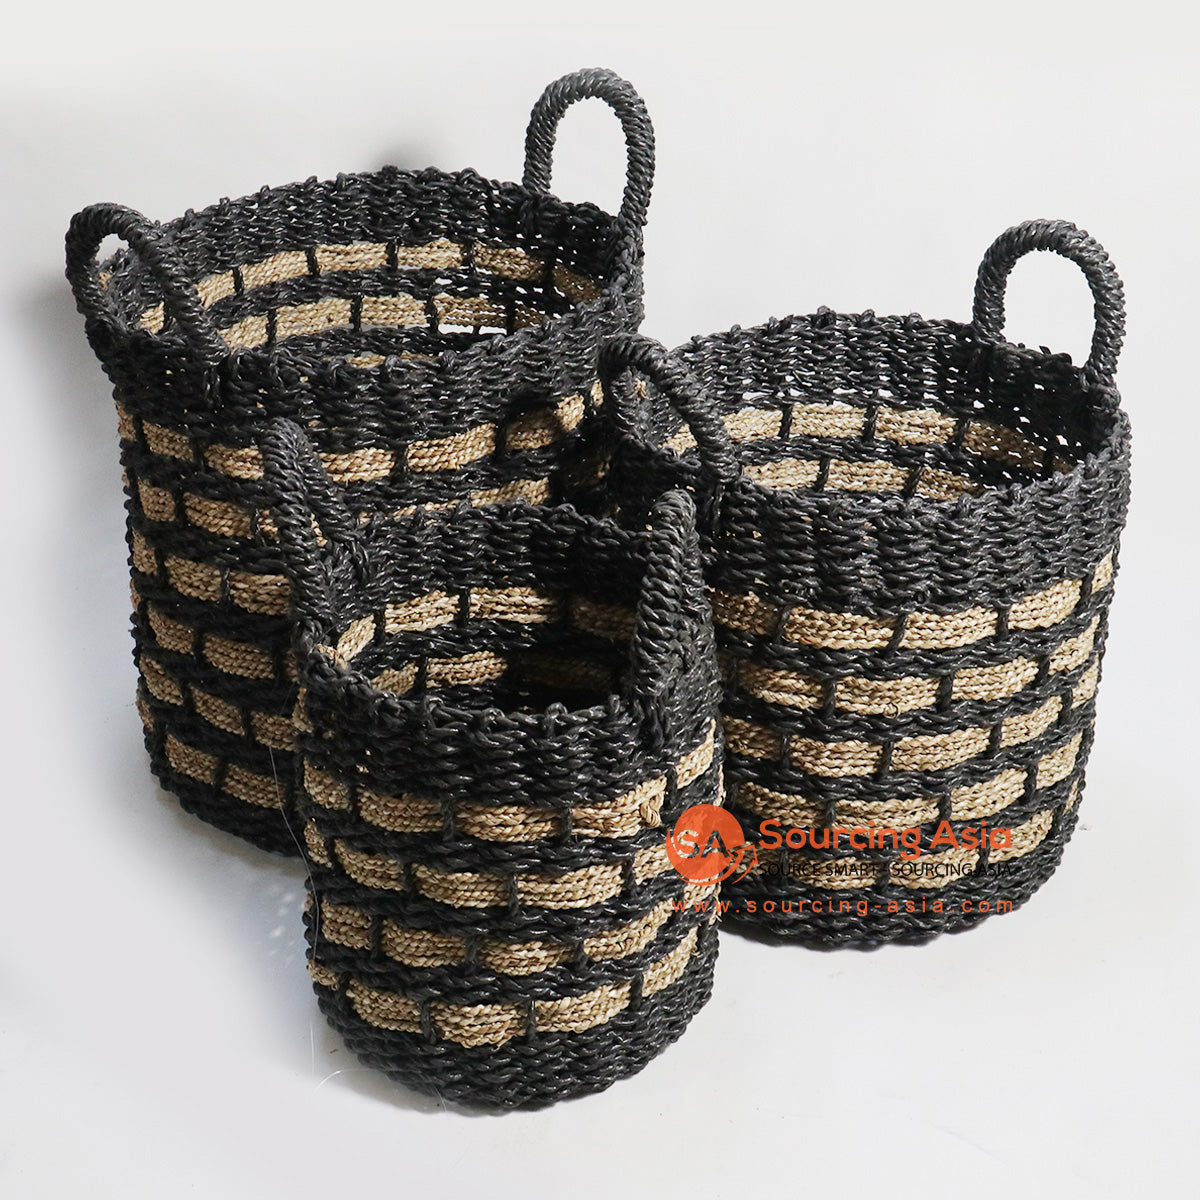 HBSC138 SET OF 3 SEA GRASS BASKETS BLACK AND NATURAL